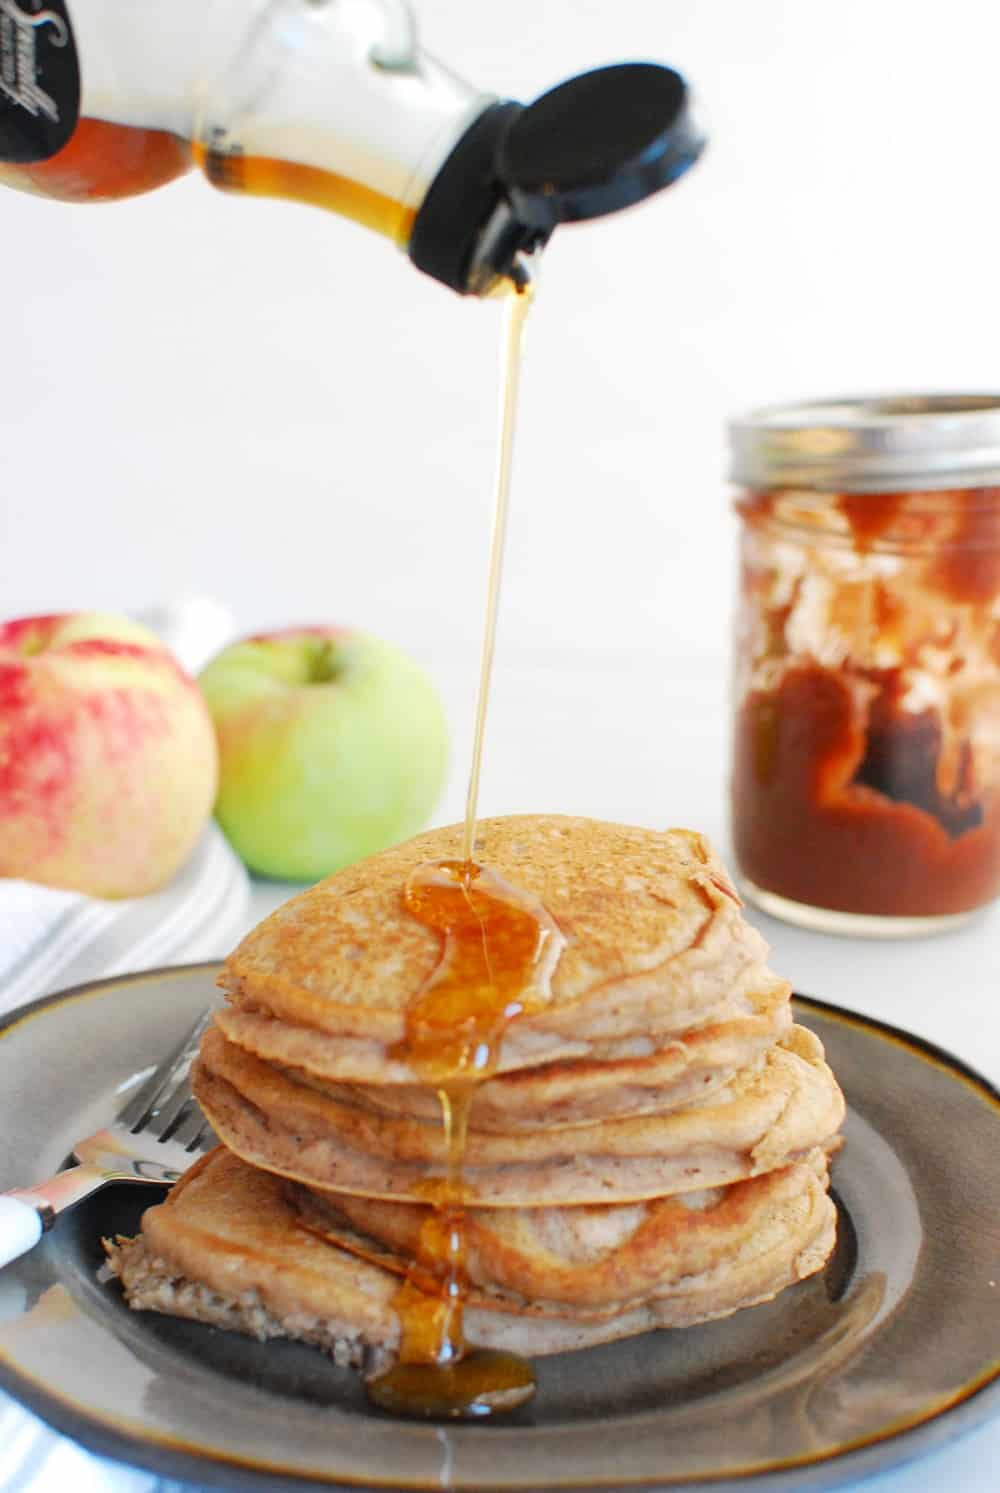 Drizzling pure maple syrup onto a stack of pancakes.